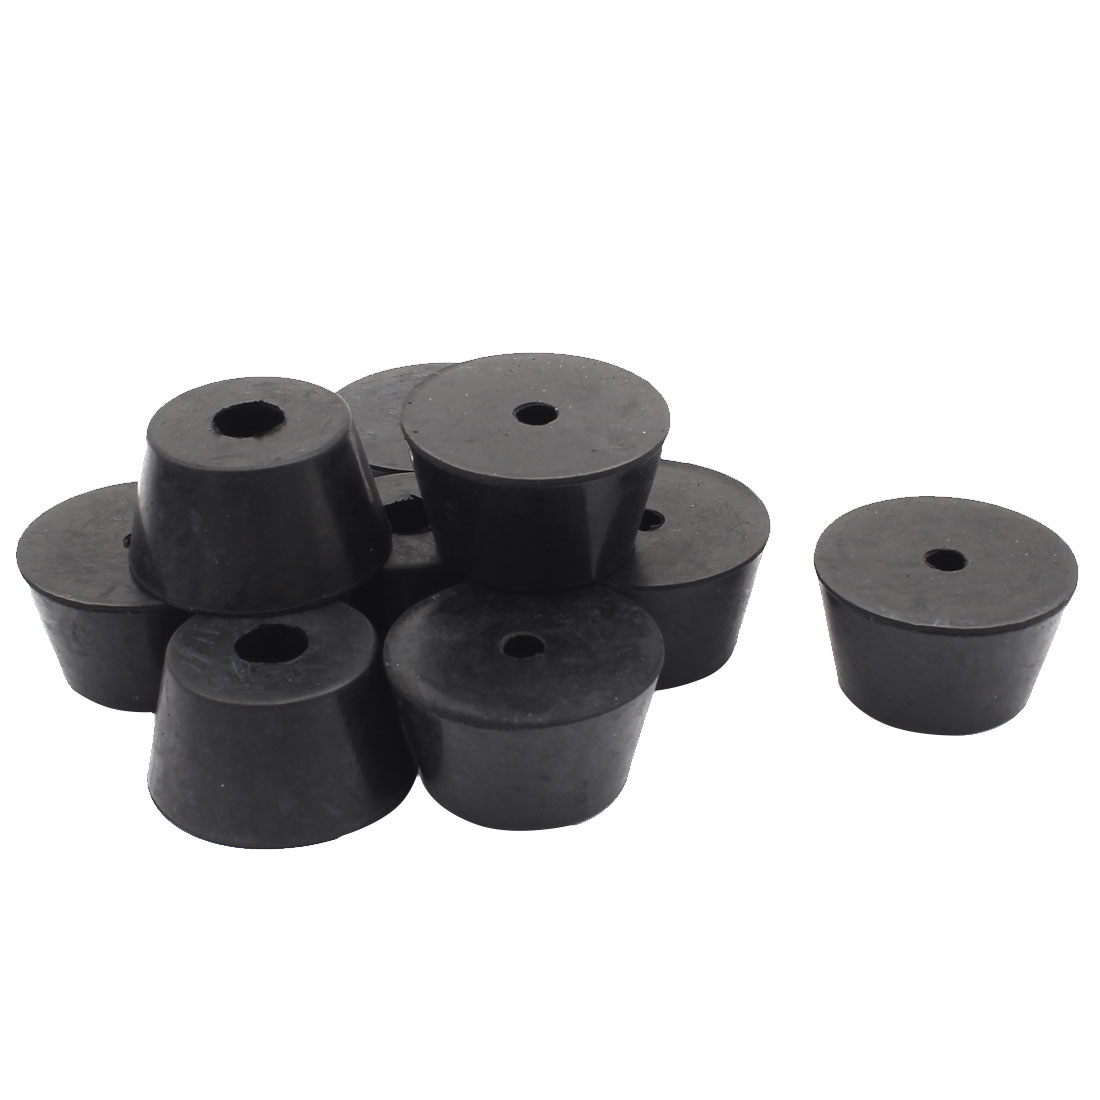 Rubber Cover Speaker Furniture Table Chair Feet Pad 40mm x 30mm x 22mm 9PCS